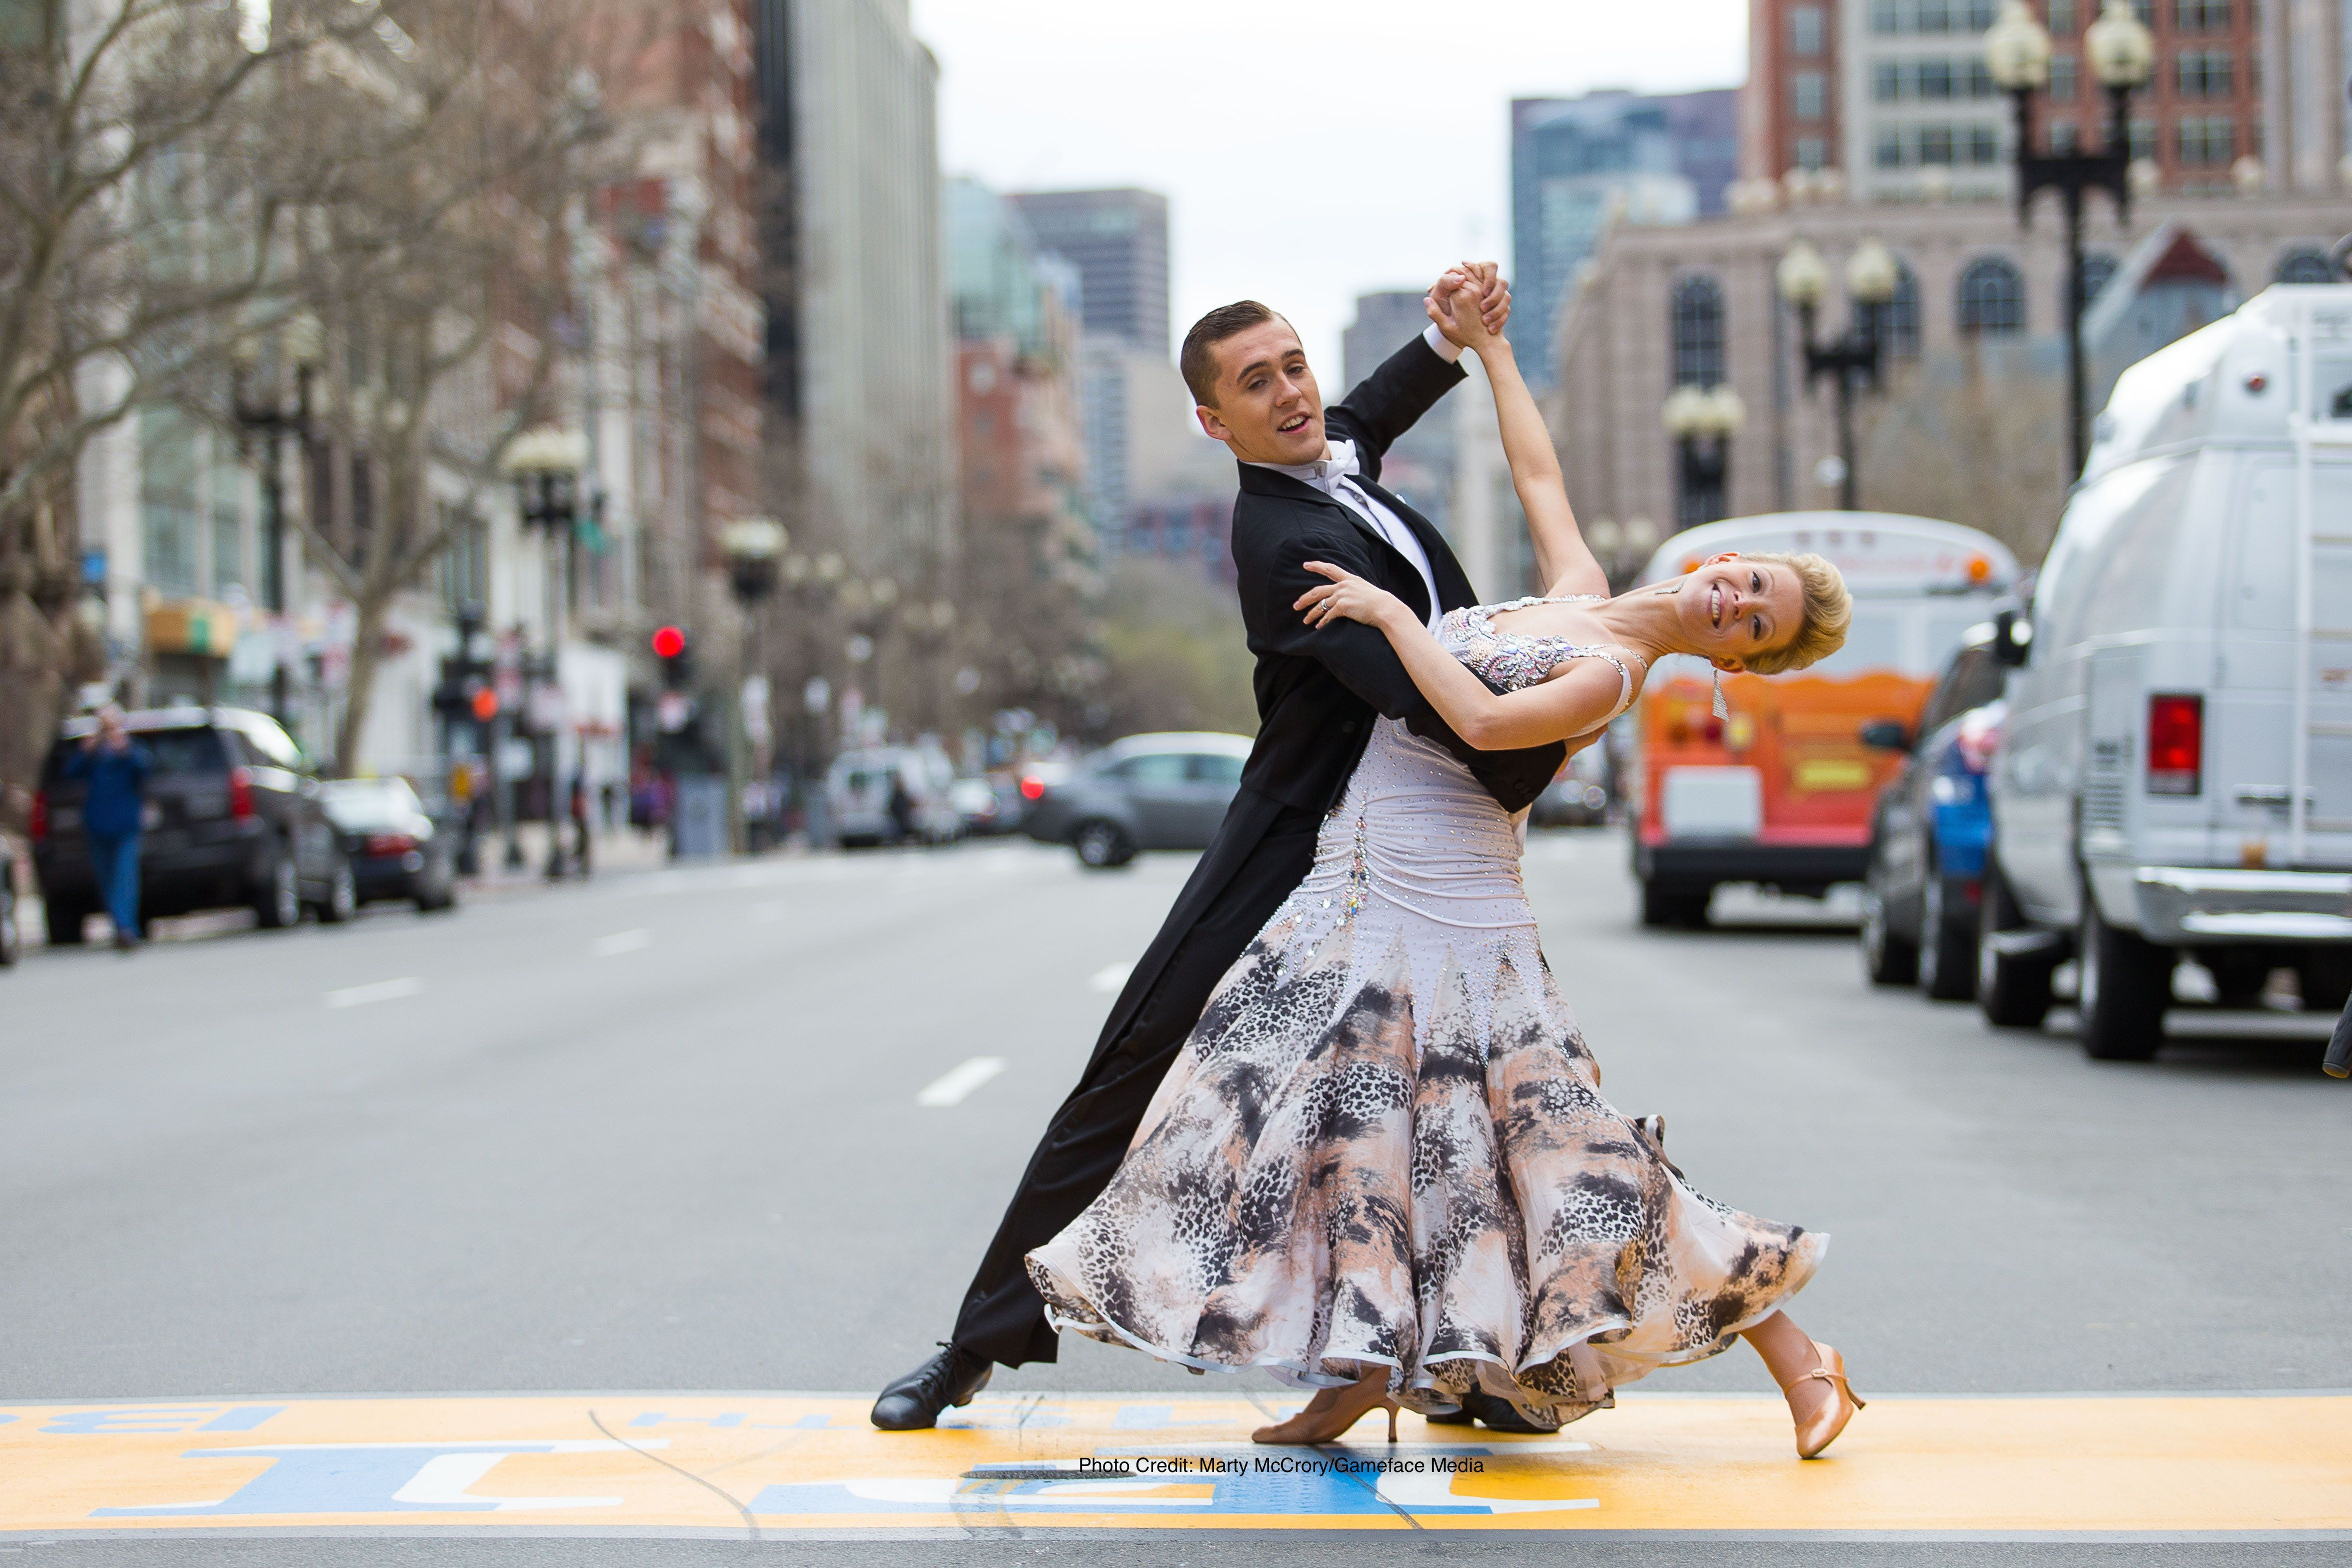 """Haslet-Davis danced over the Boston Marathon finish line as part of the """"Heroes of Summer"""" campaign in April 2015."""